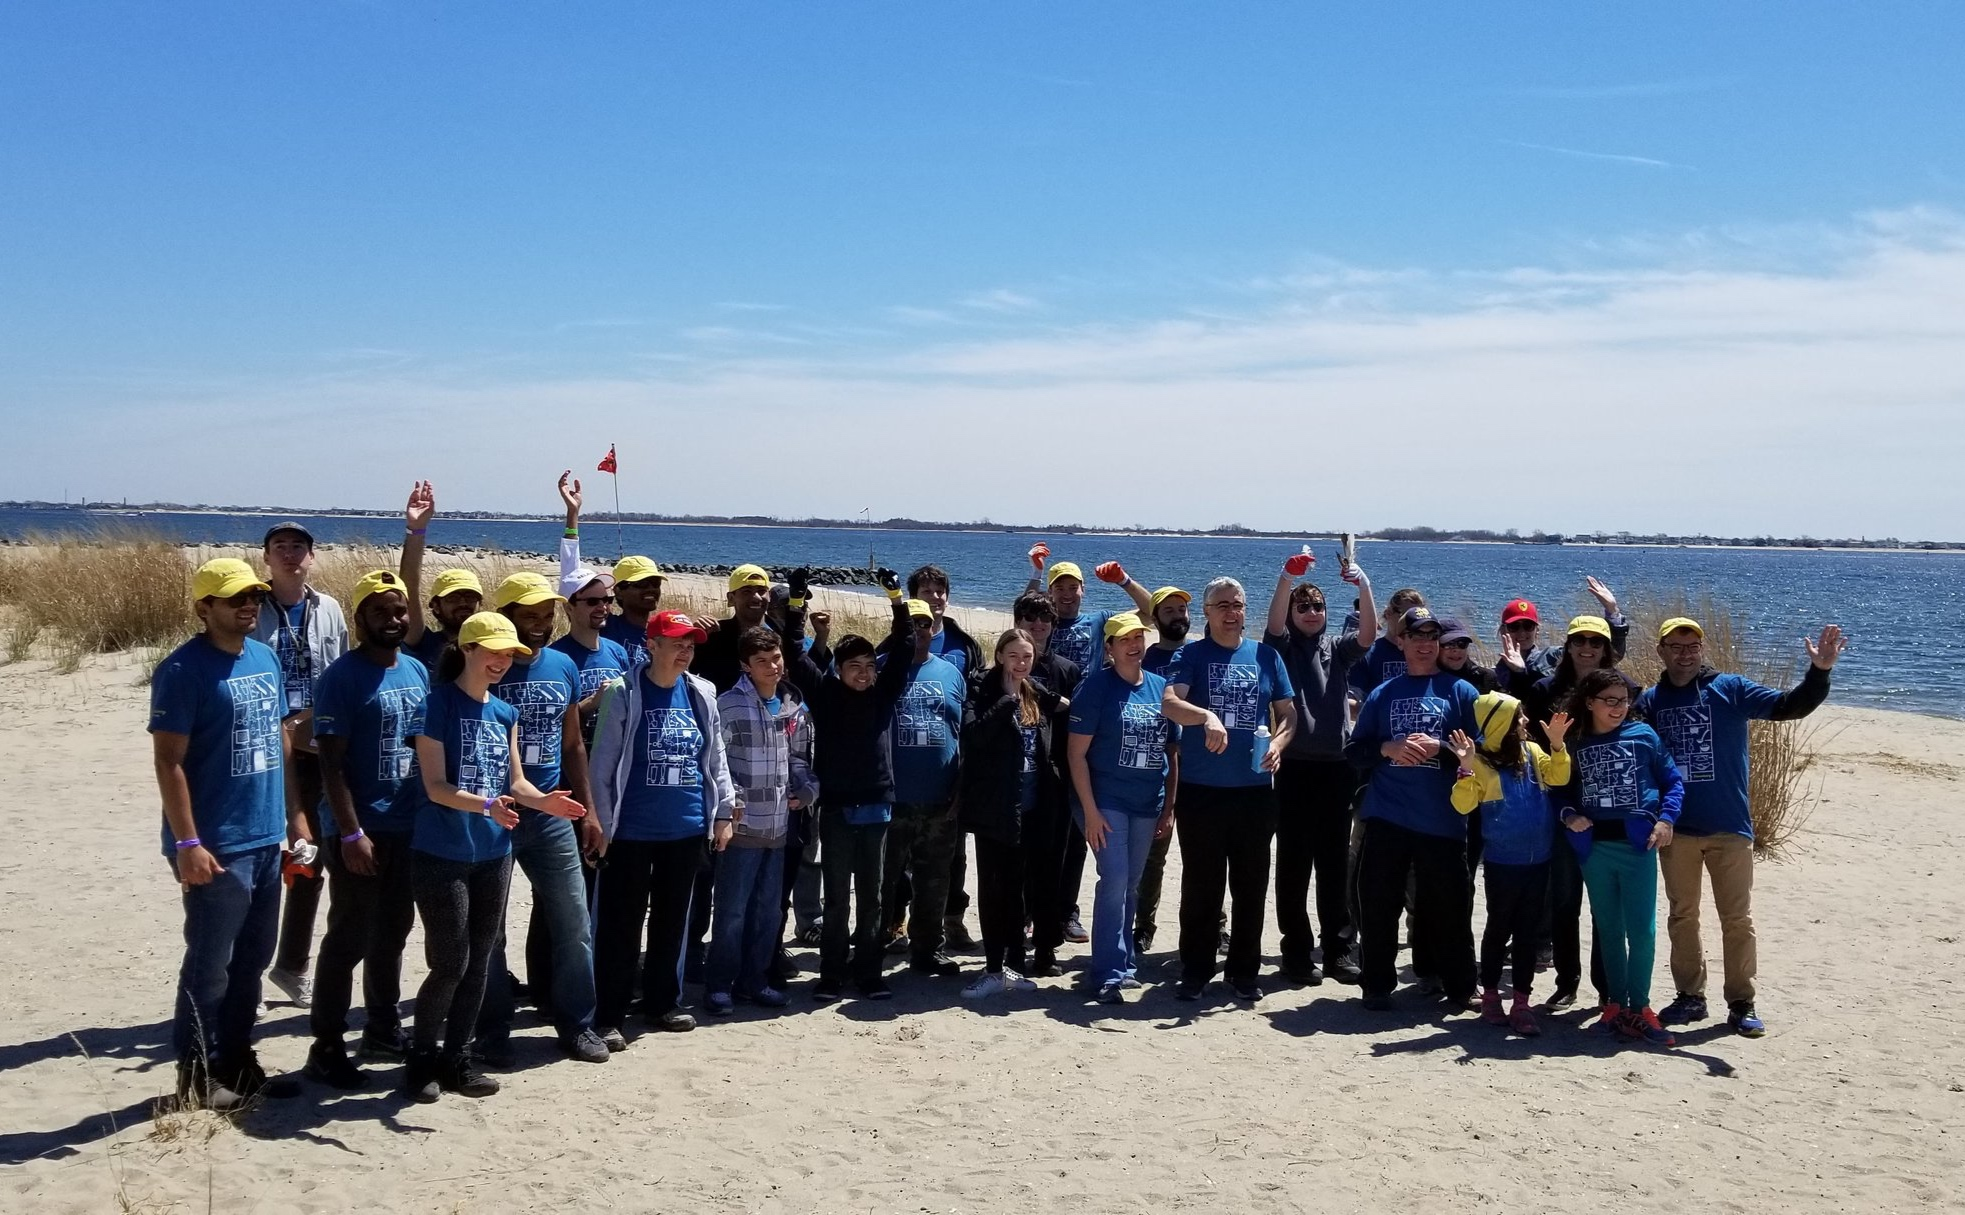 Bloomberg volunteers and their families remove marine debris and trash from Plumb Beach shoreline on Earth Day, 2018.